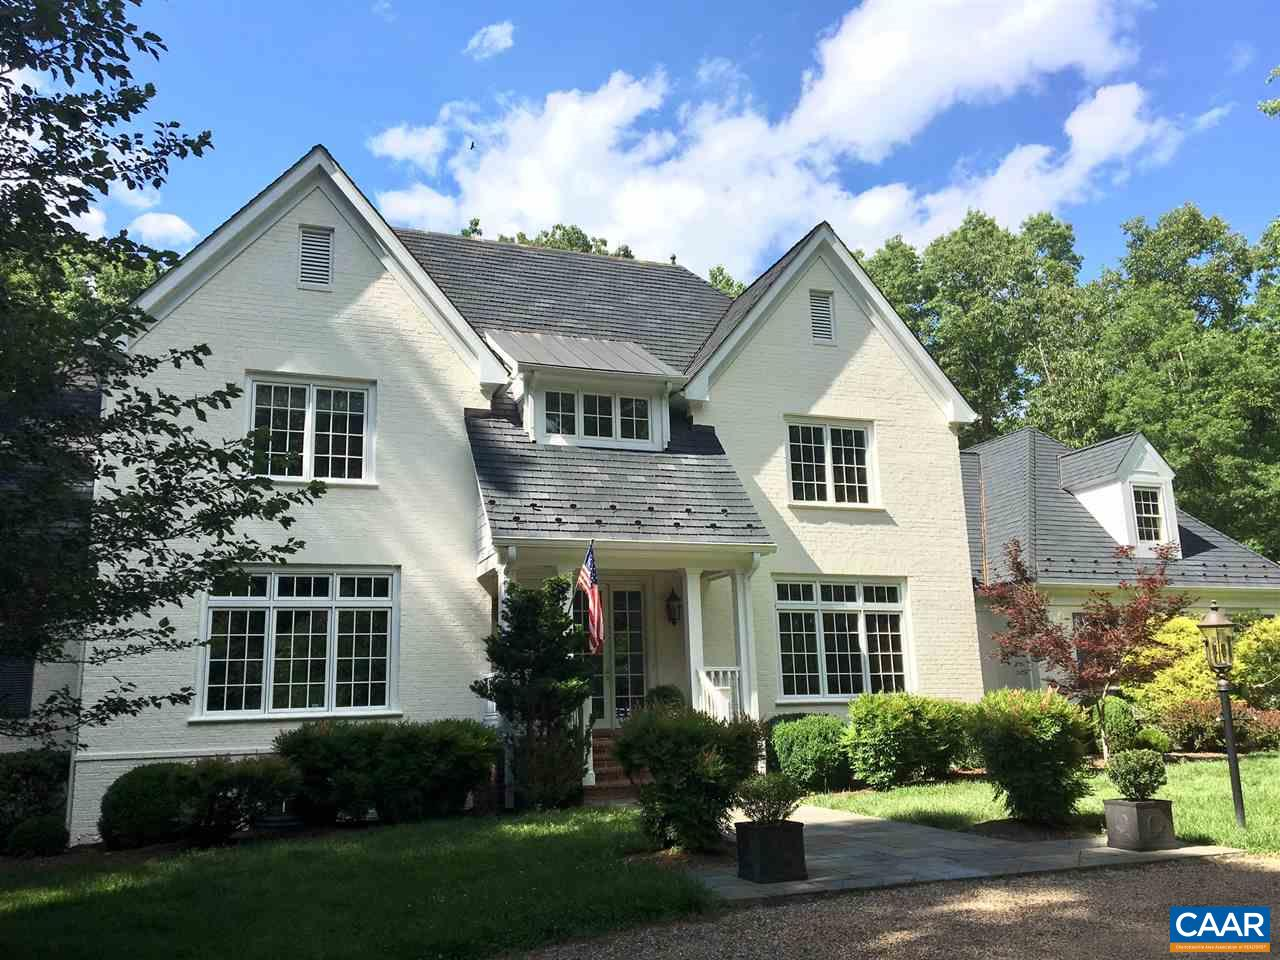 home for sale , MLS #542410, 1037 Club Dr